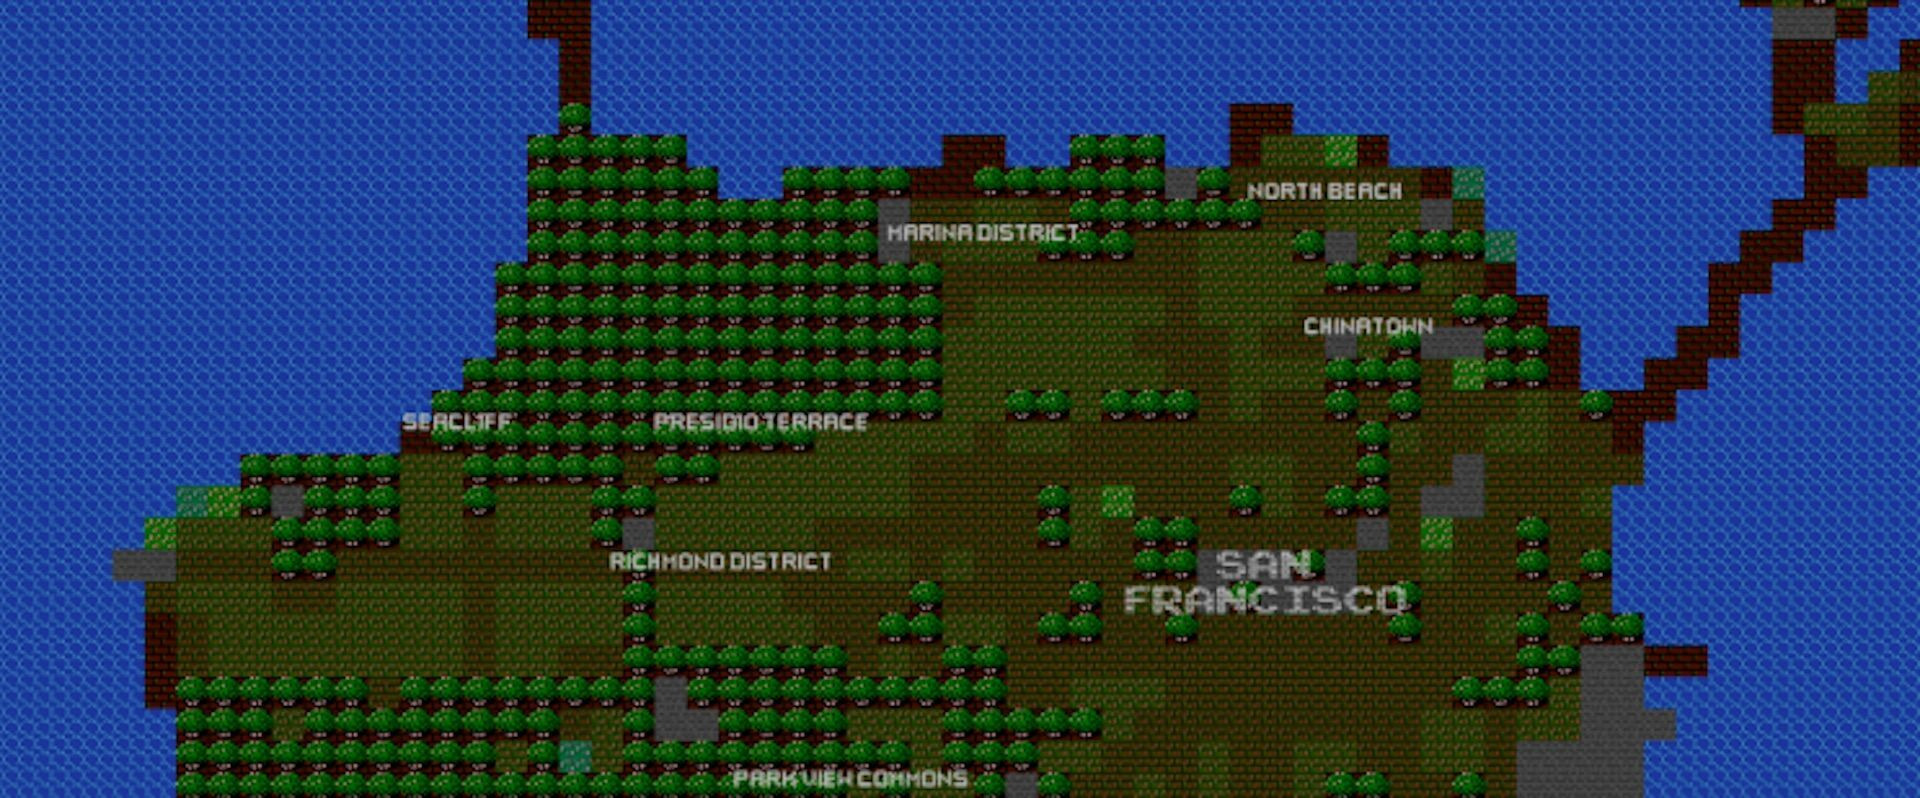 Explore your home city like it's a Nintendo game